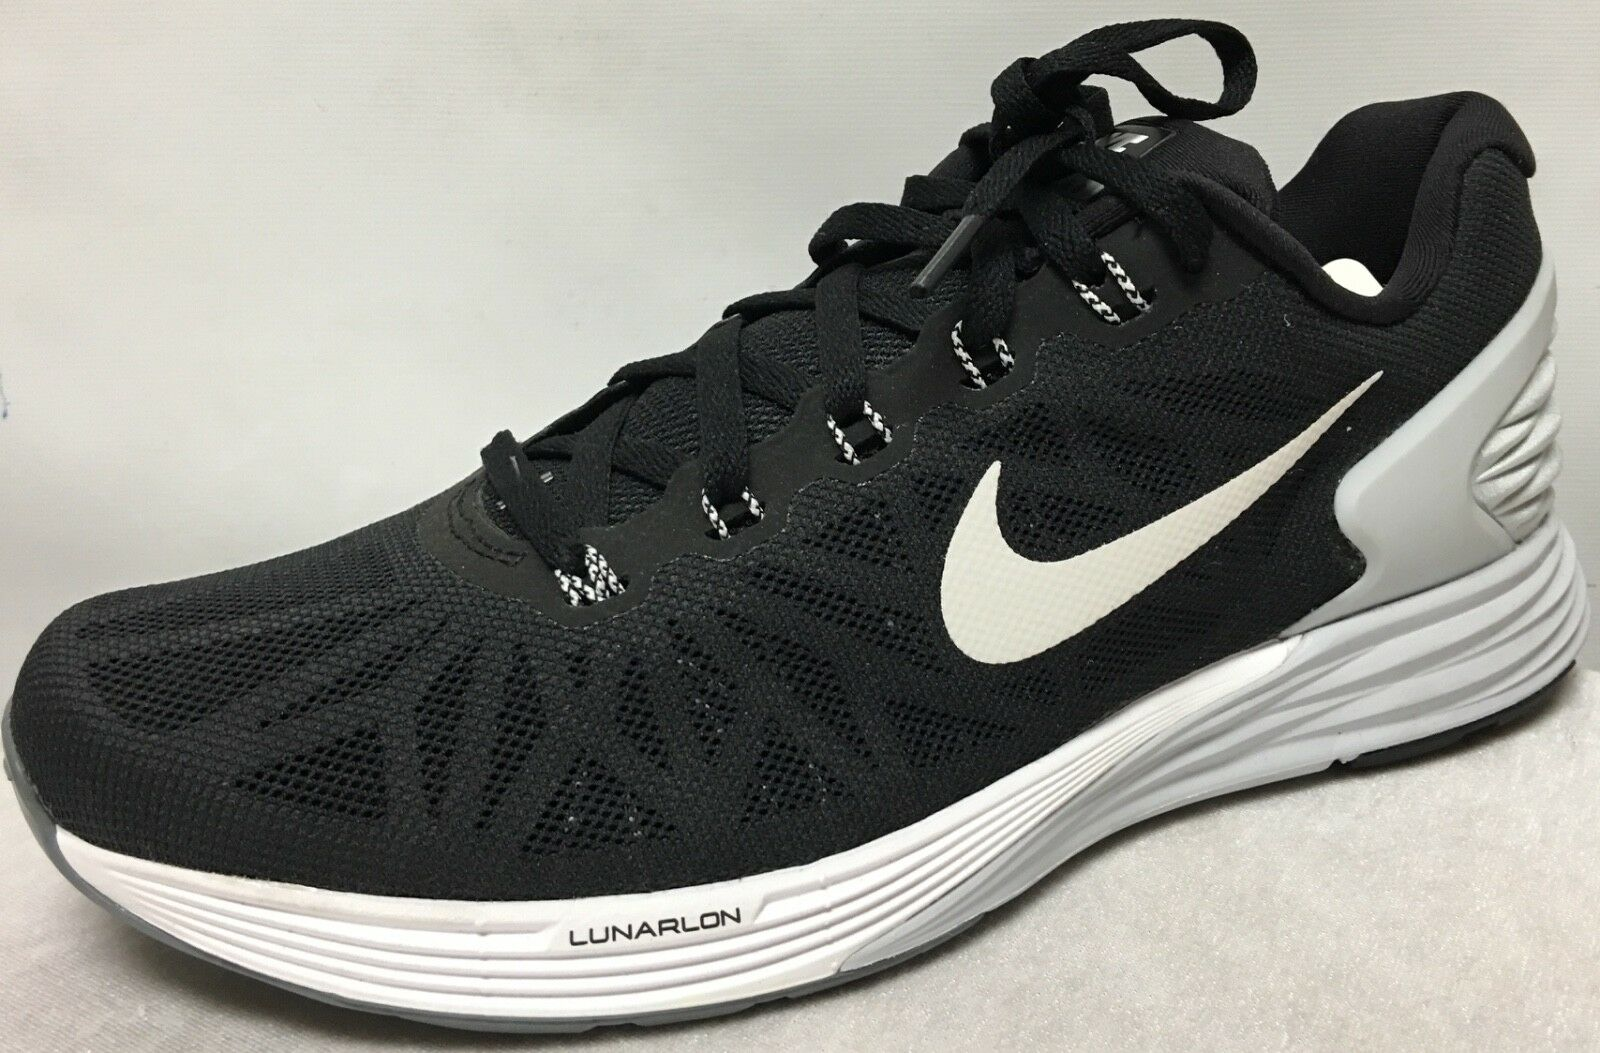 Nike Lunarglide 6 Shoes  Cheap and fashionable